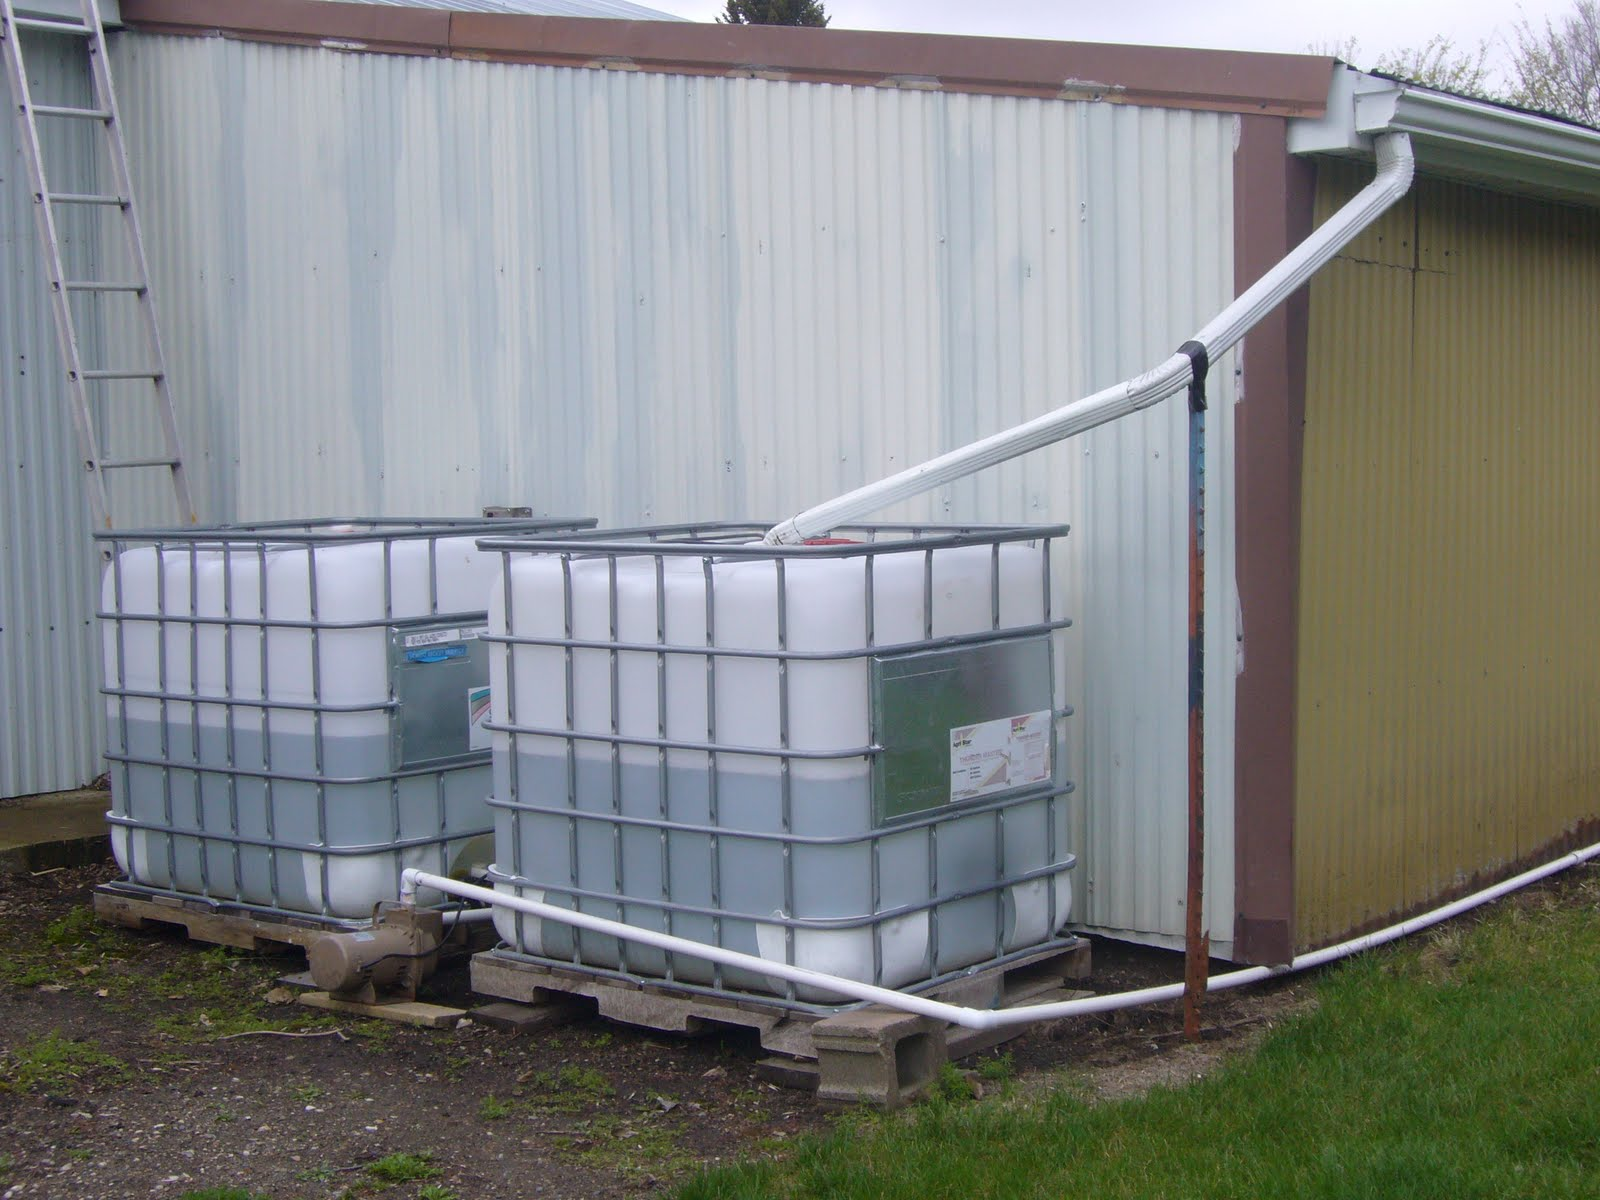 Collecting rainwater now illegal in many states for Rainwater harvesting quotes